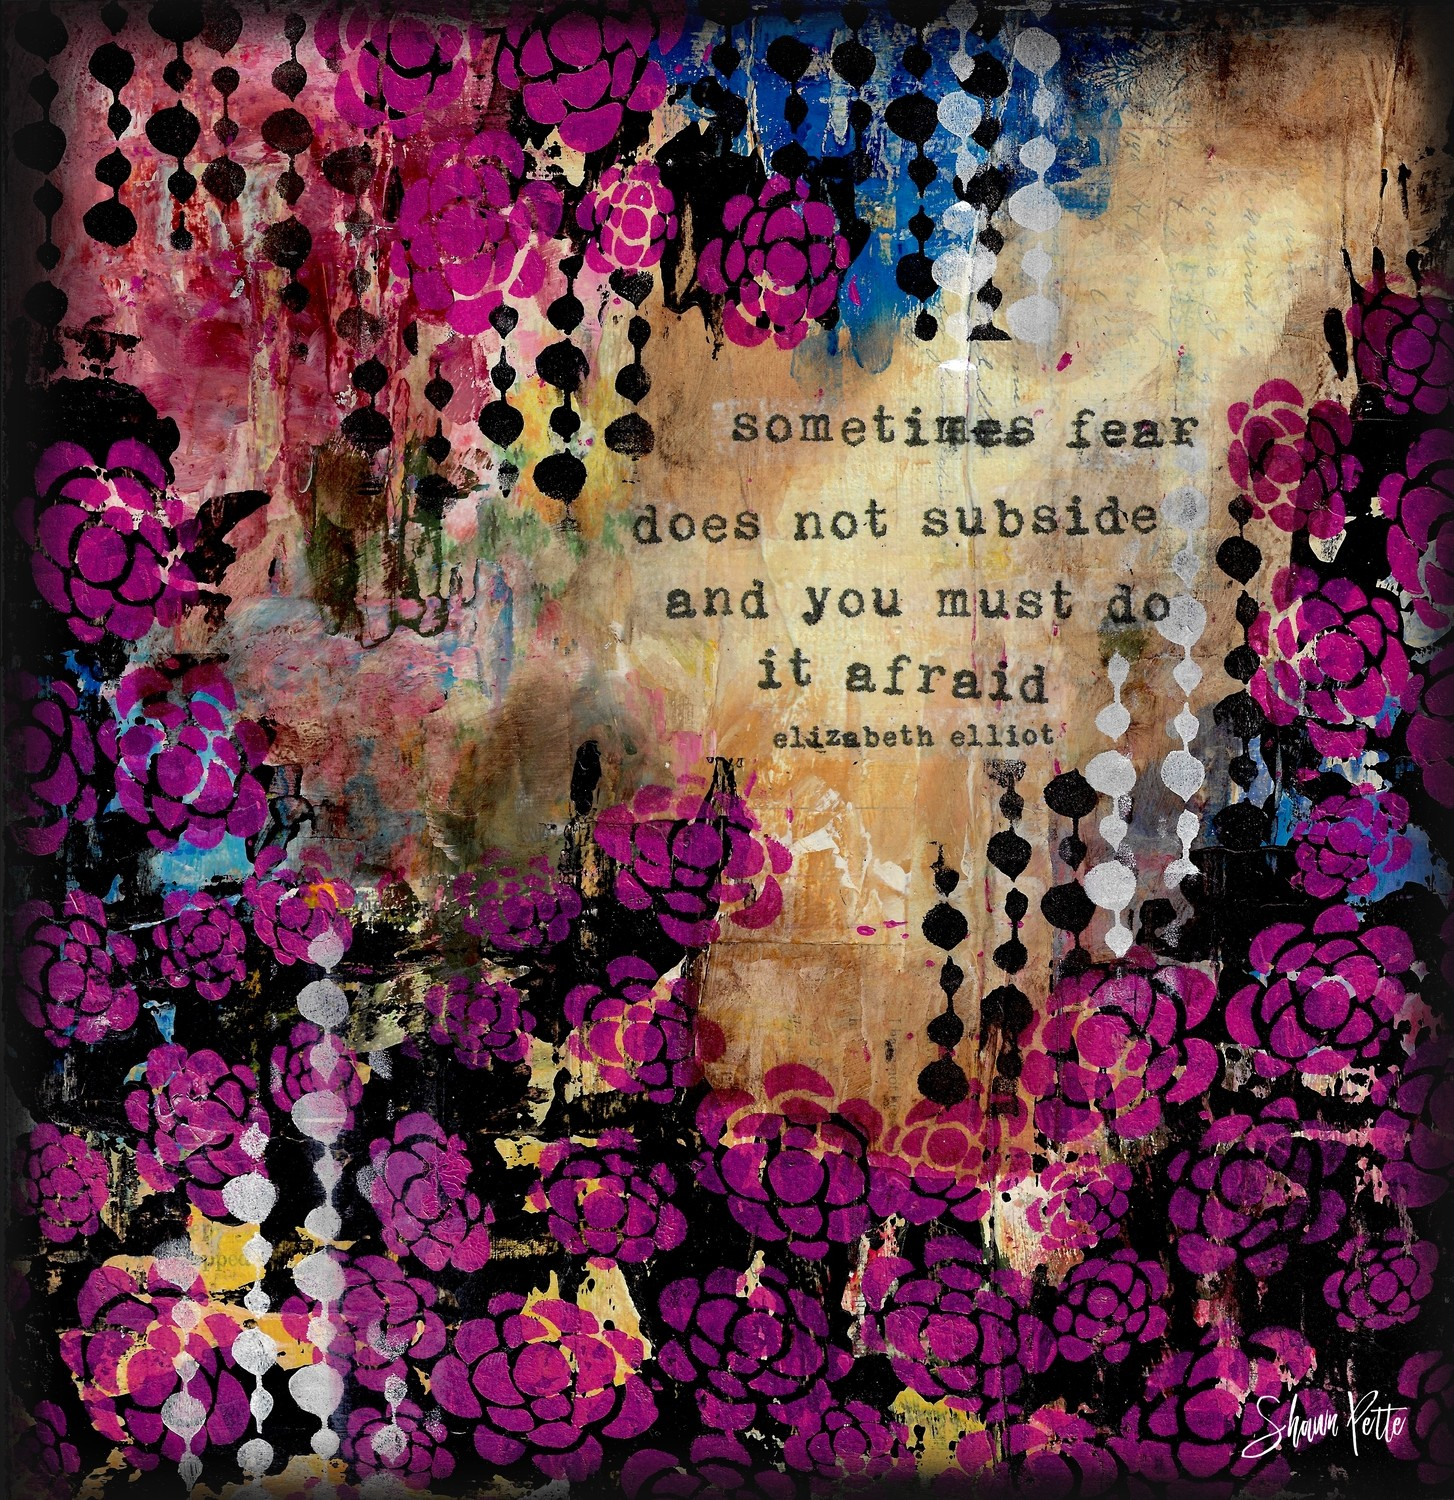 """Sometimes fear does not subside and you must do it Afraid"""